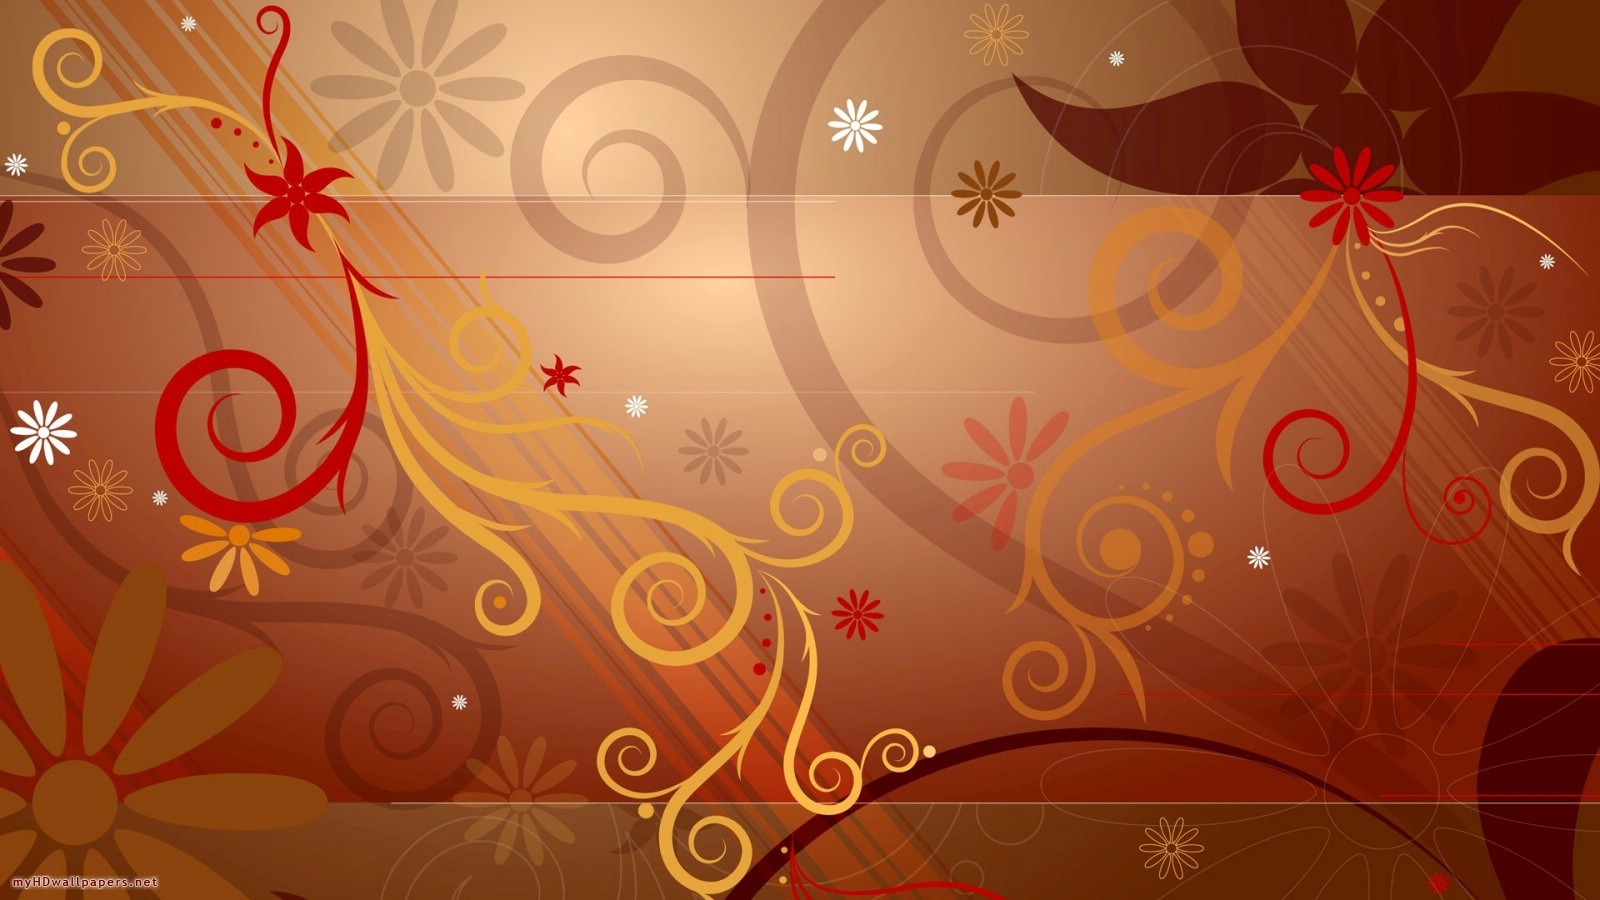 Abstract Free Desktop Fall Wallpaper 1600 X 900 Wallpaper